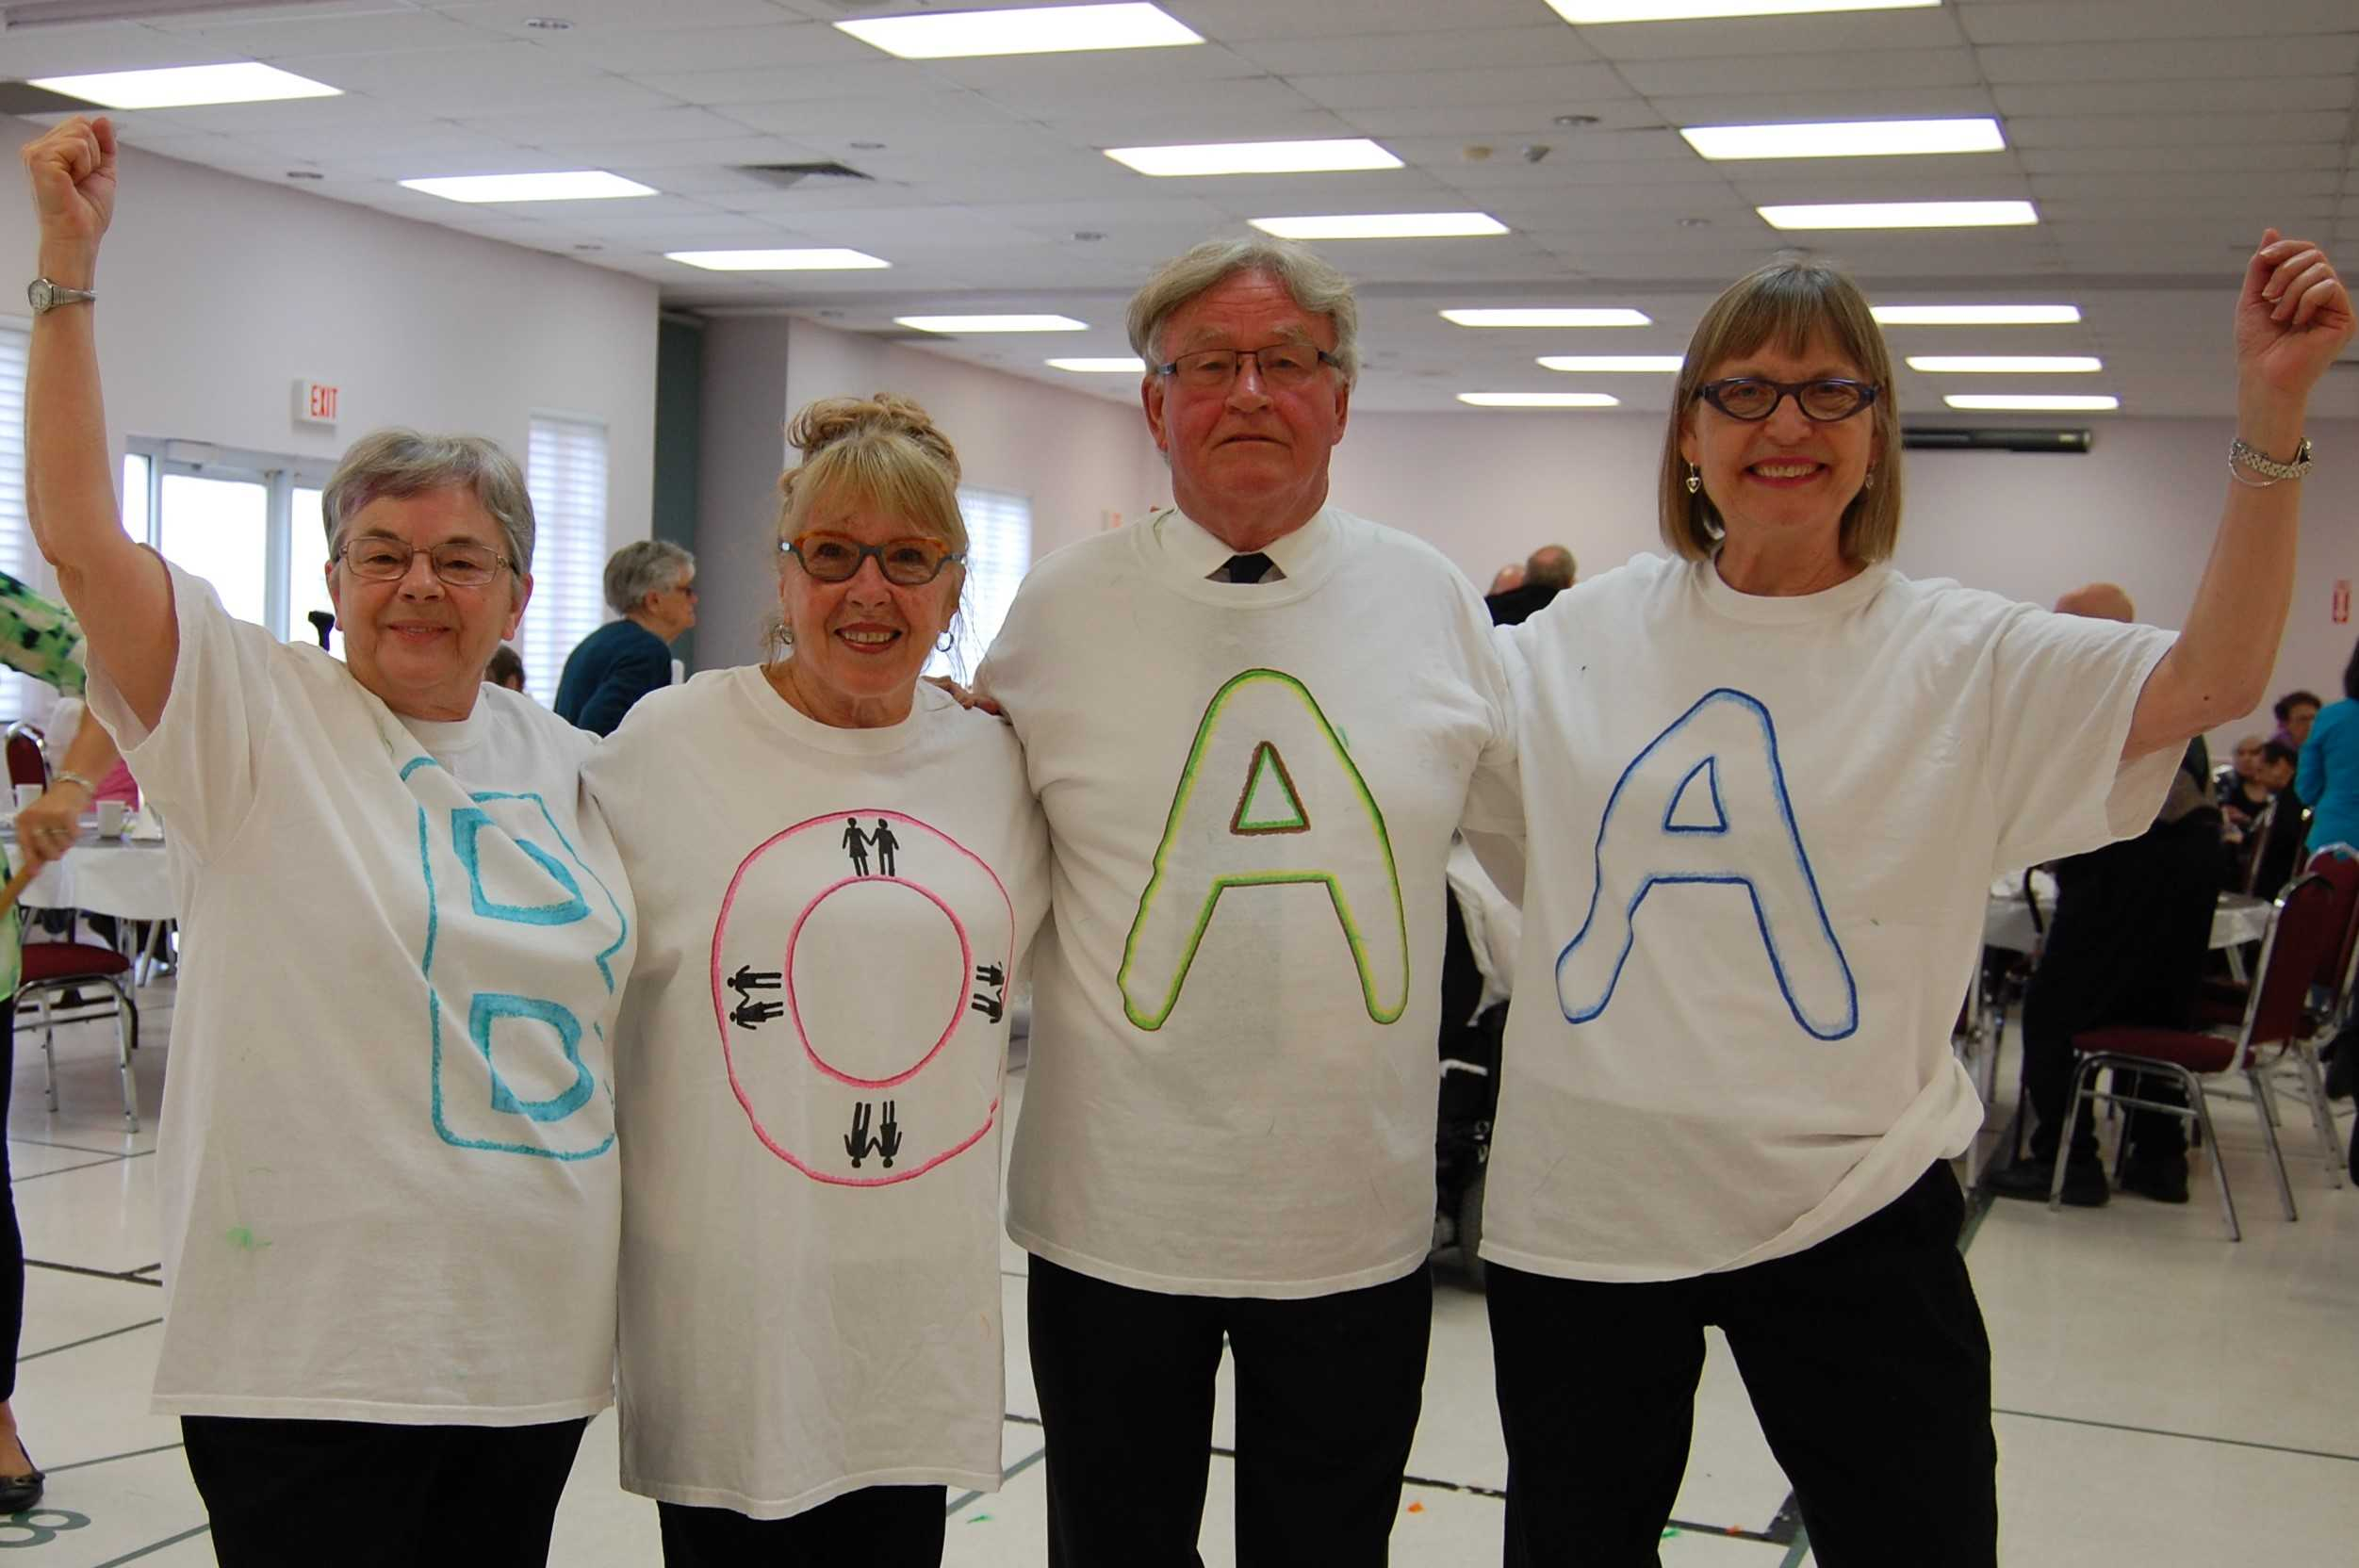 Clarington older adults association